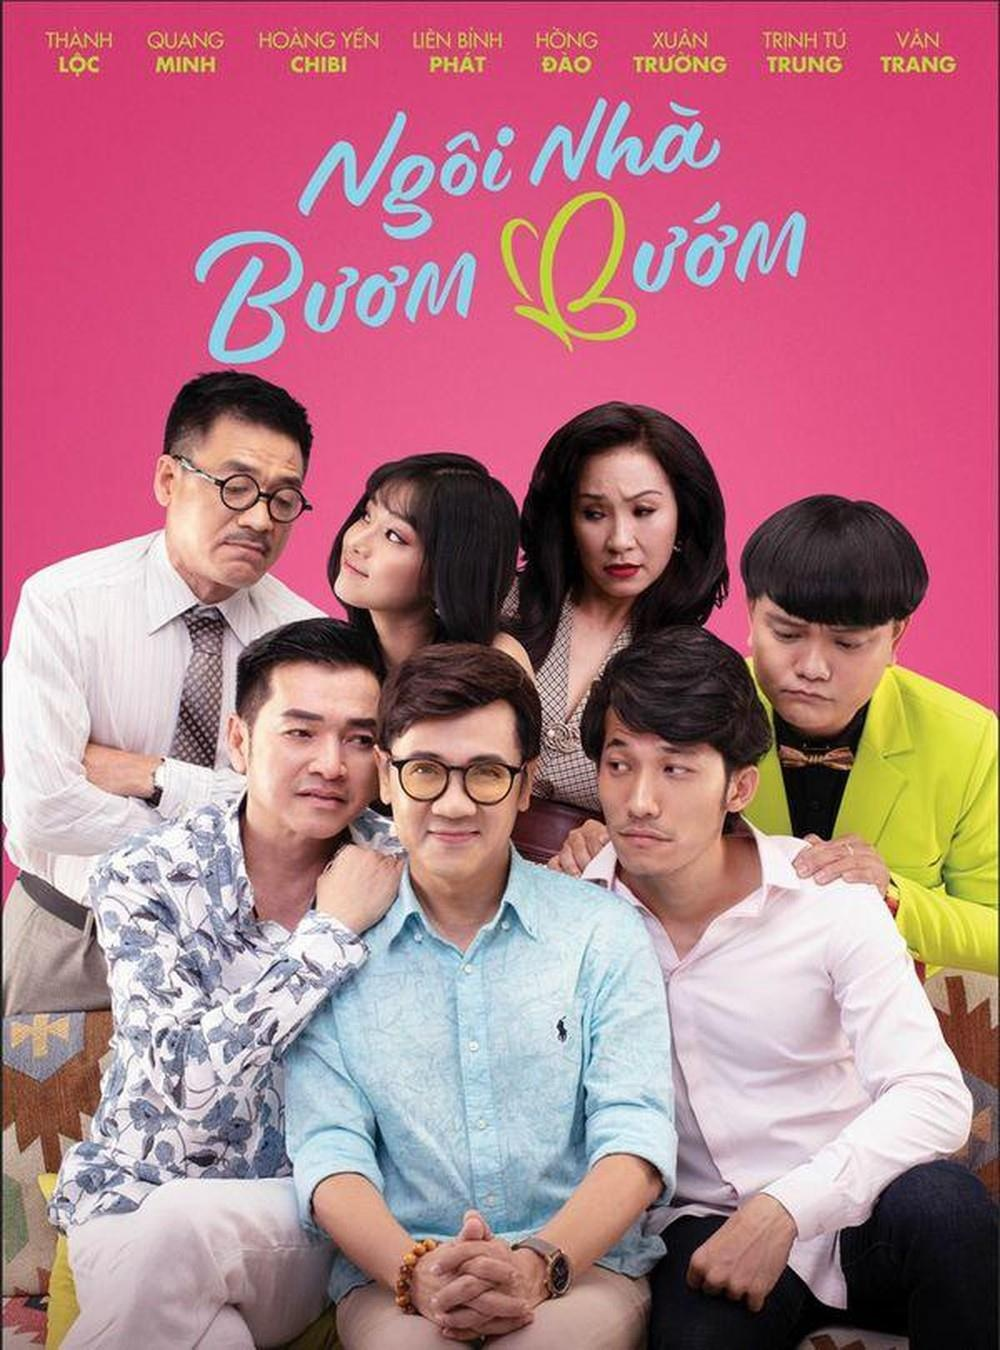 review phim Ngoi nha buom buom anh 1